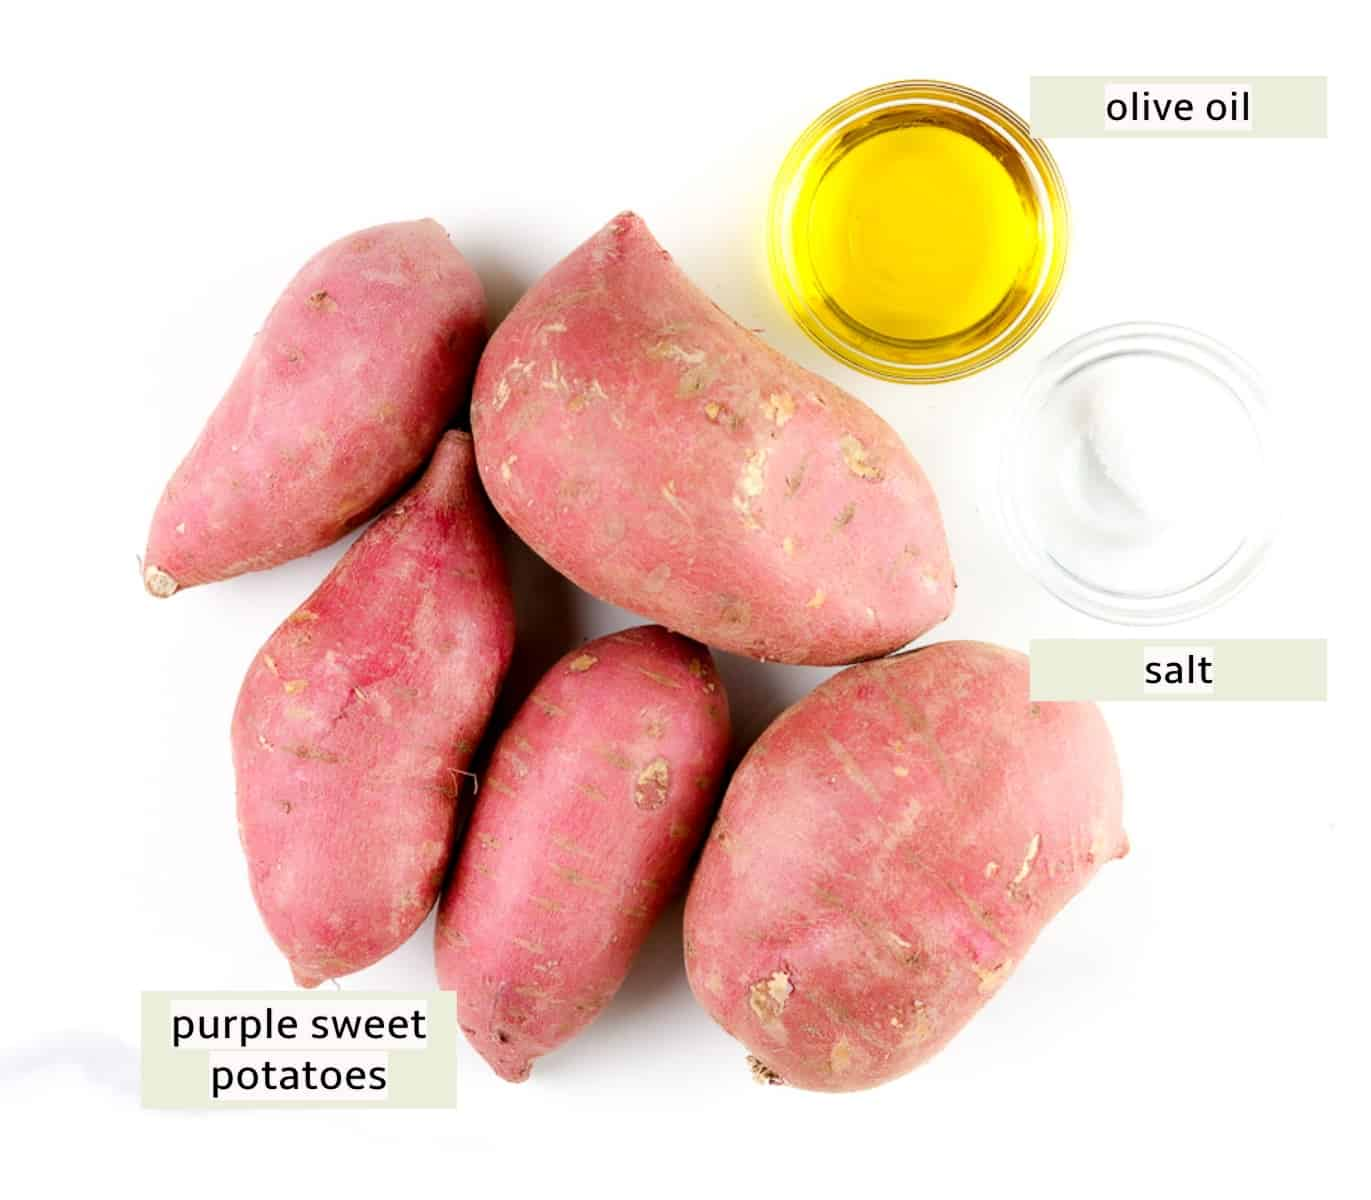 Image of ingredients needed to make papas fritas.